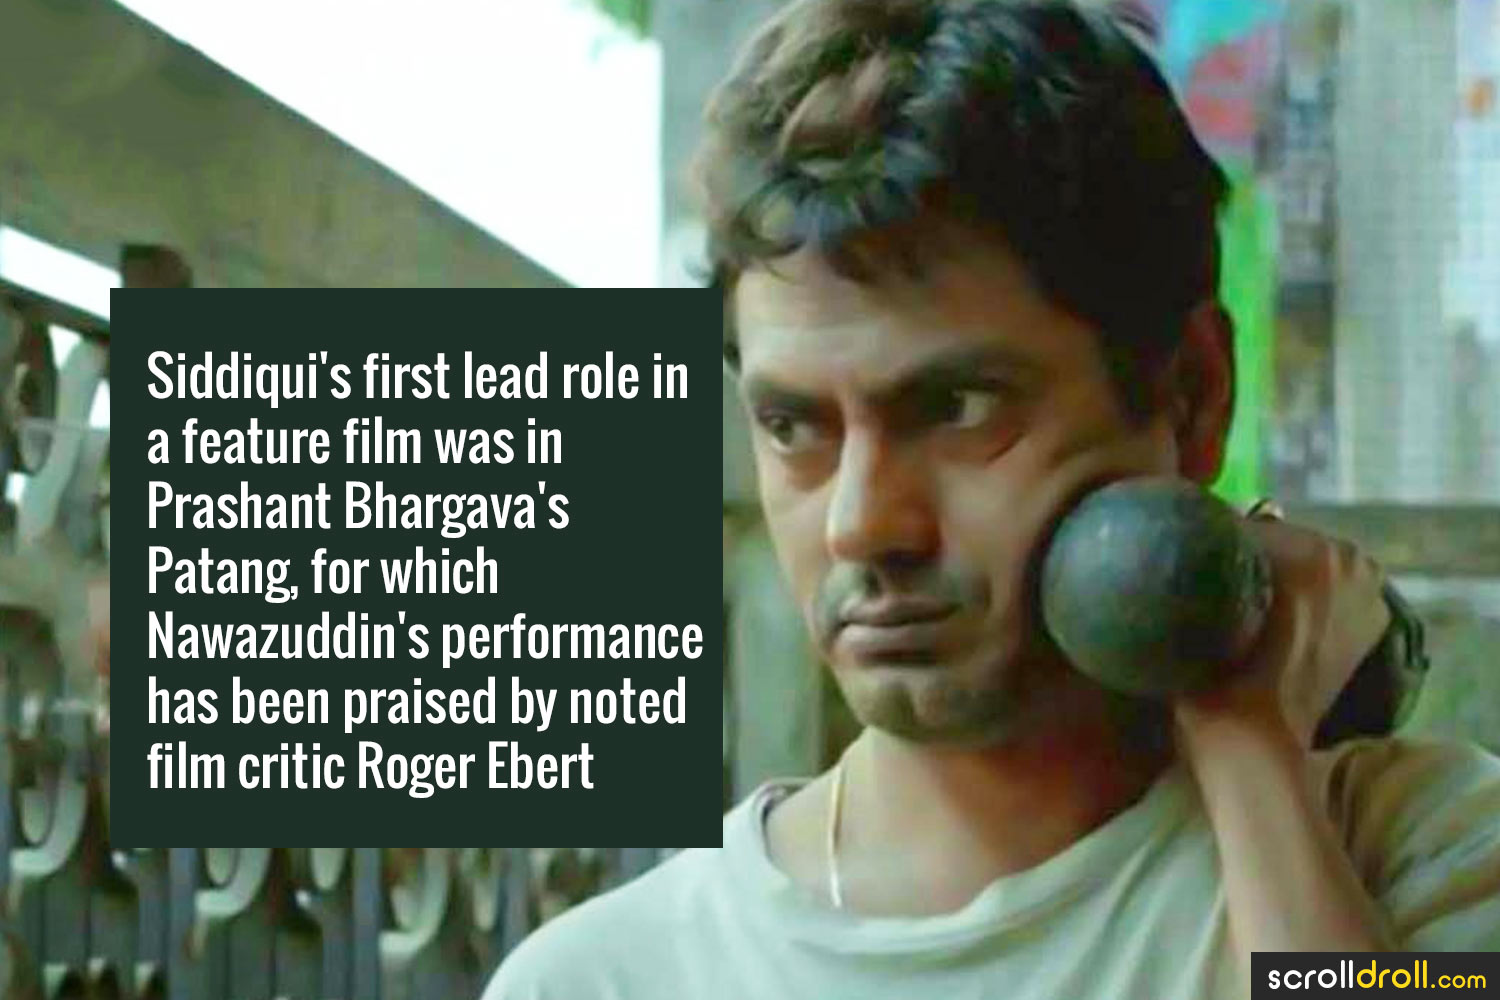 Facts about Nawazuddin Siddique-Siddiqui's first lead role in a feature film was in Prashant Bhargava's Patang,for which Nawazuddin's performance has been praised by noted film critic Roger Ebert